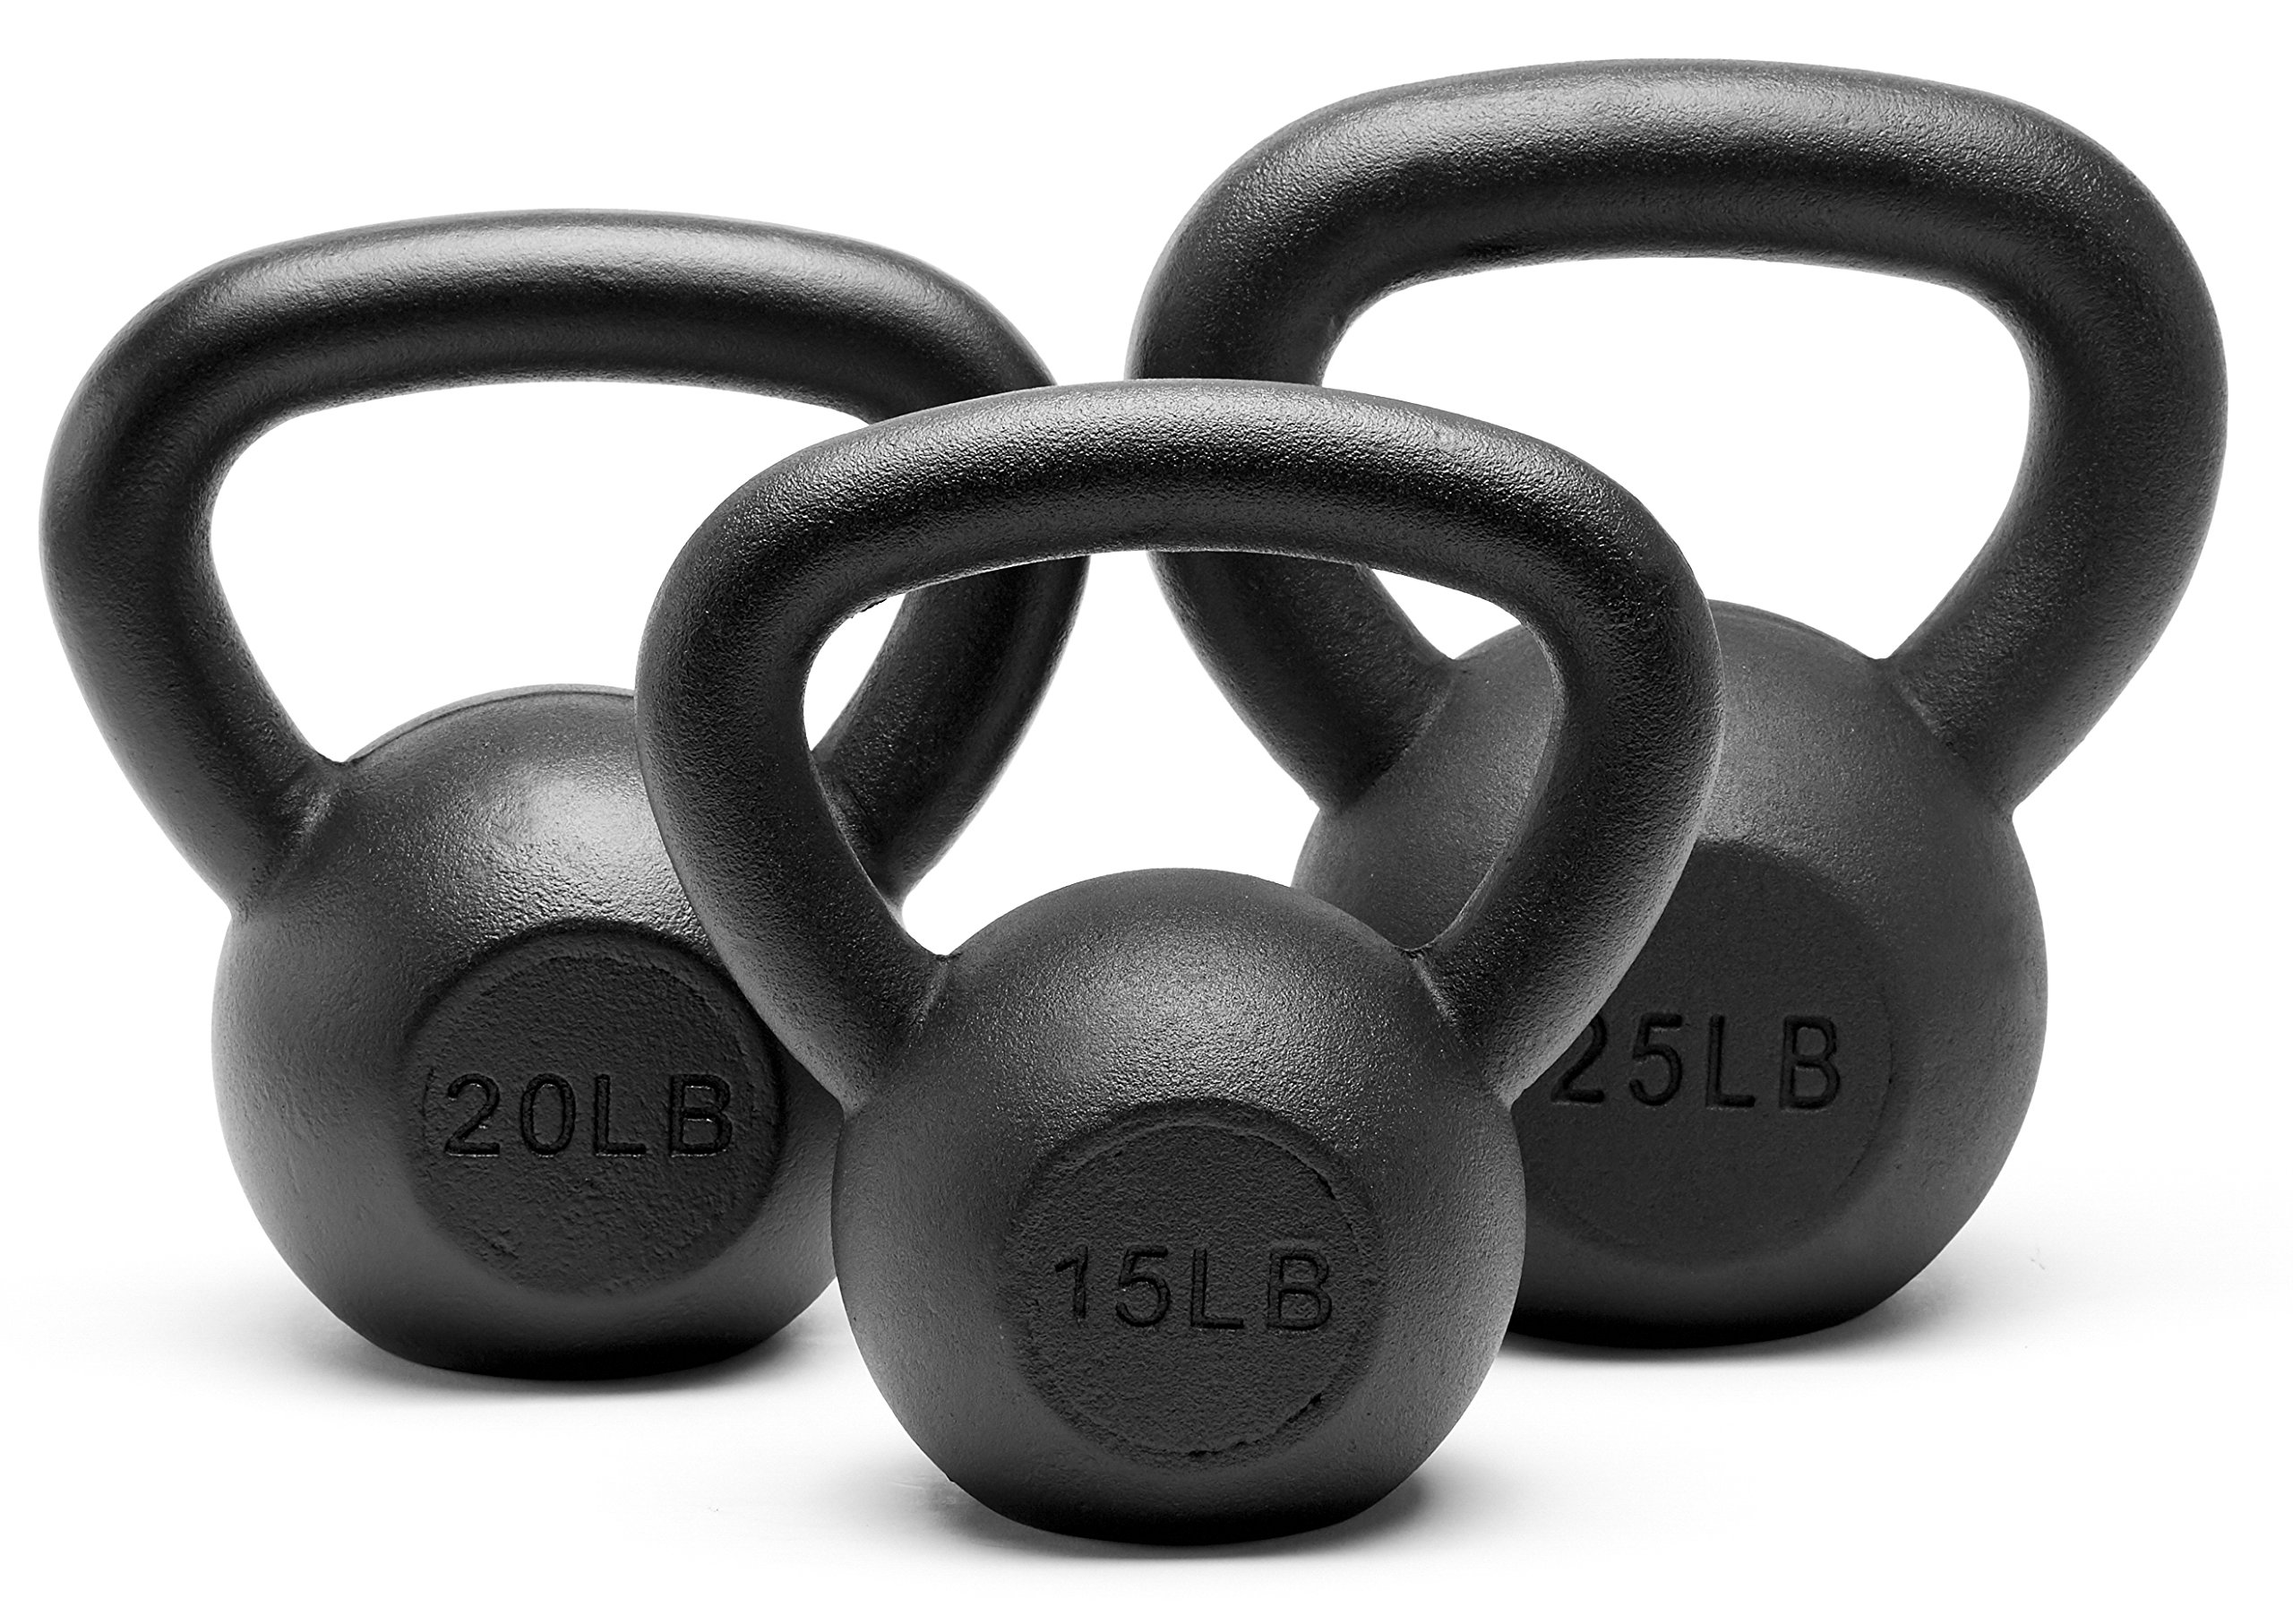 Unipack Powder Coated Solid Cast Iron Kettlebell Weights Set- (15+20+25lbs)